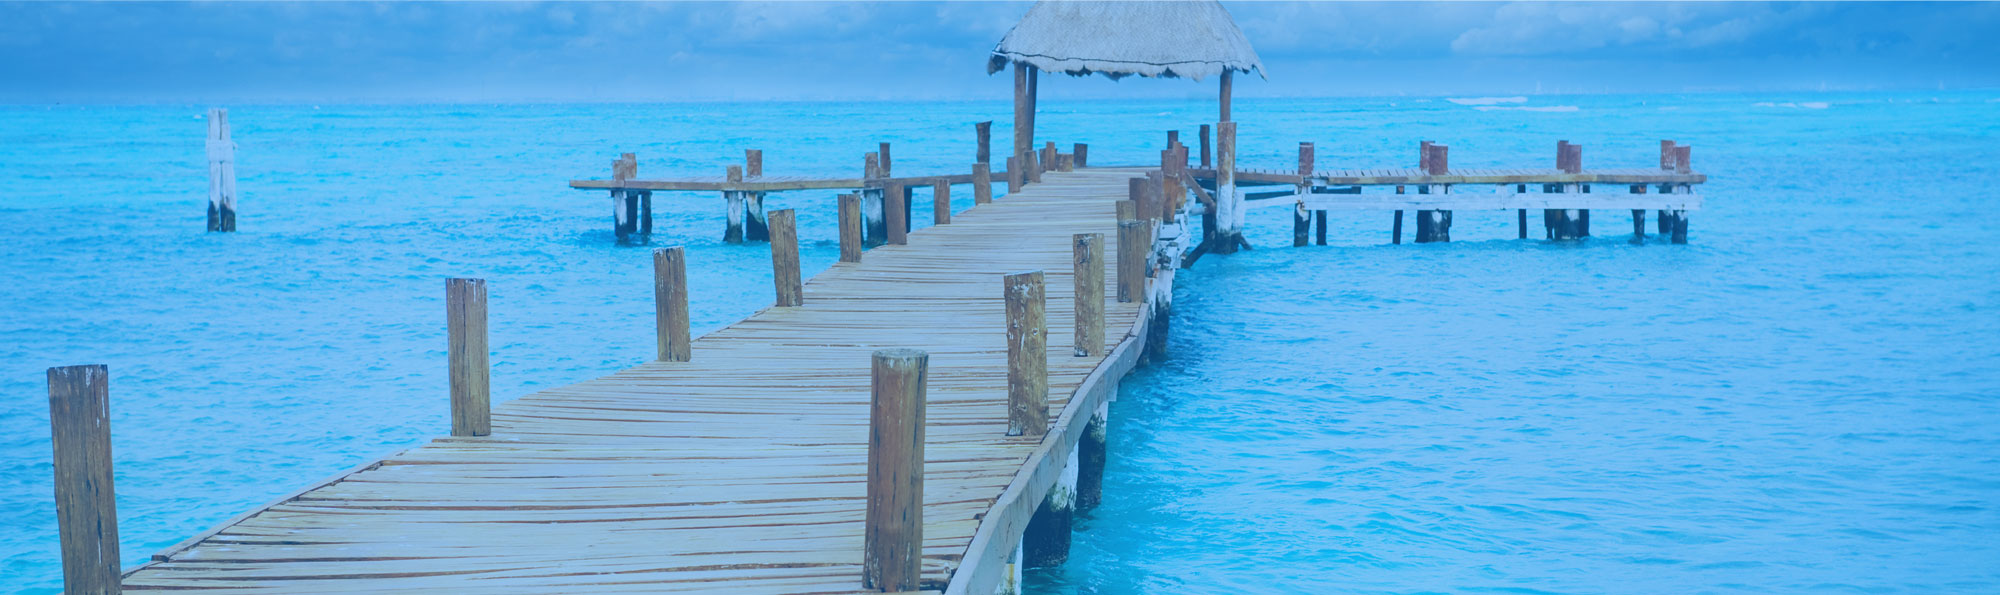 Dock and Blue Water